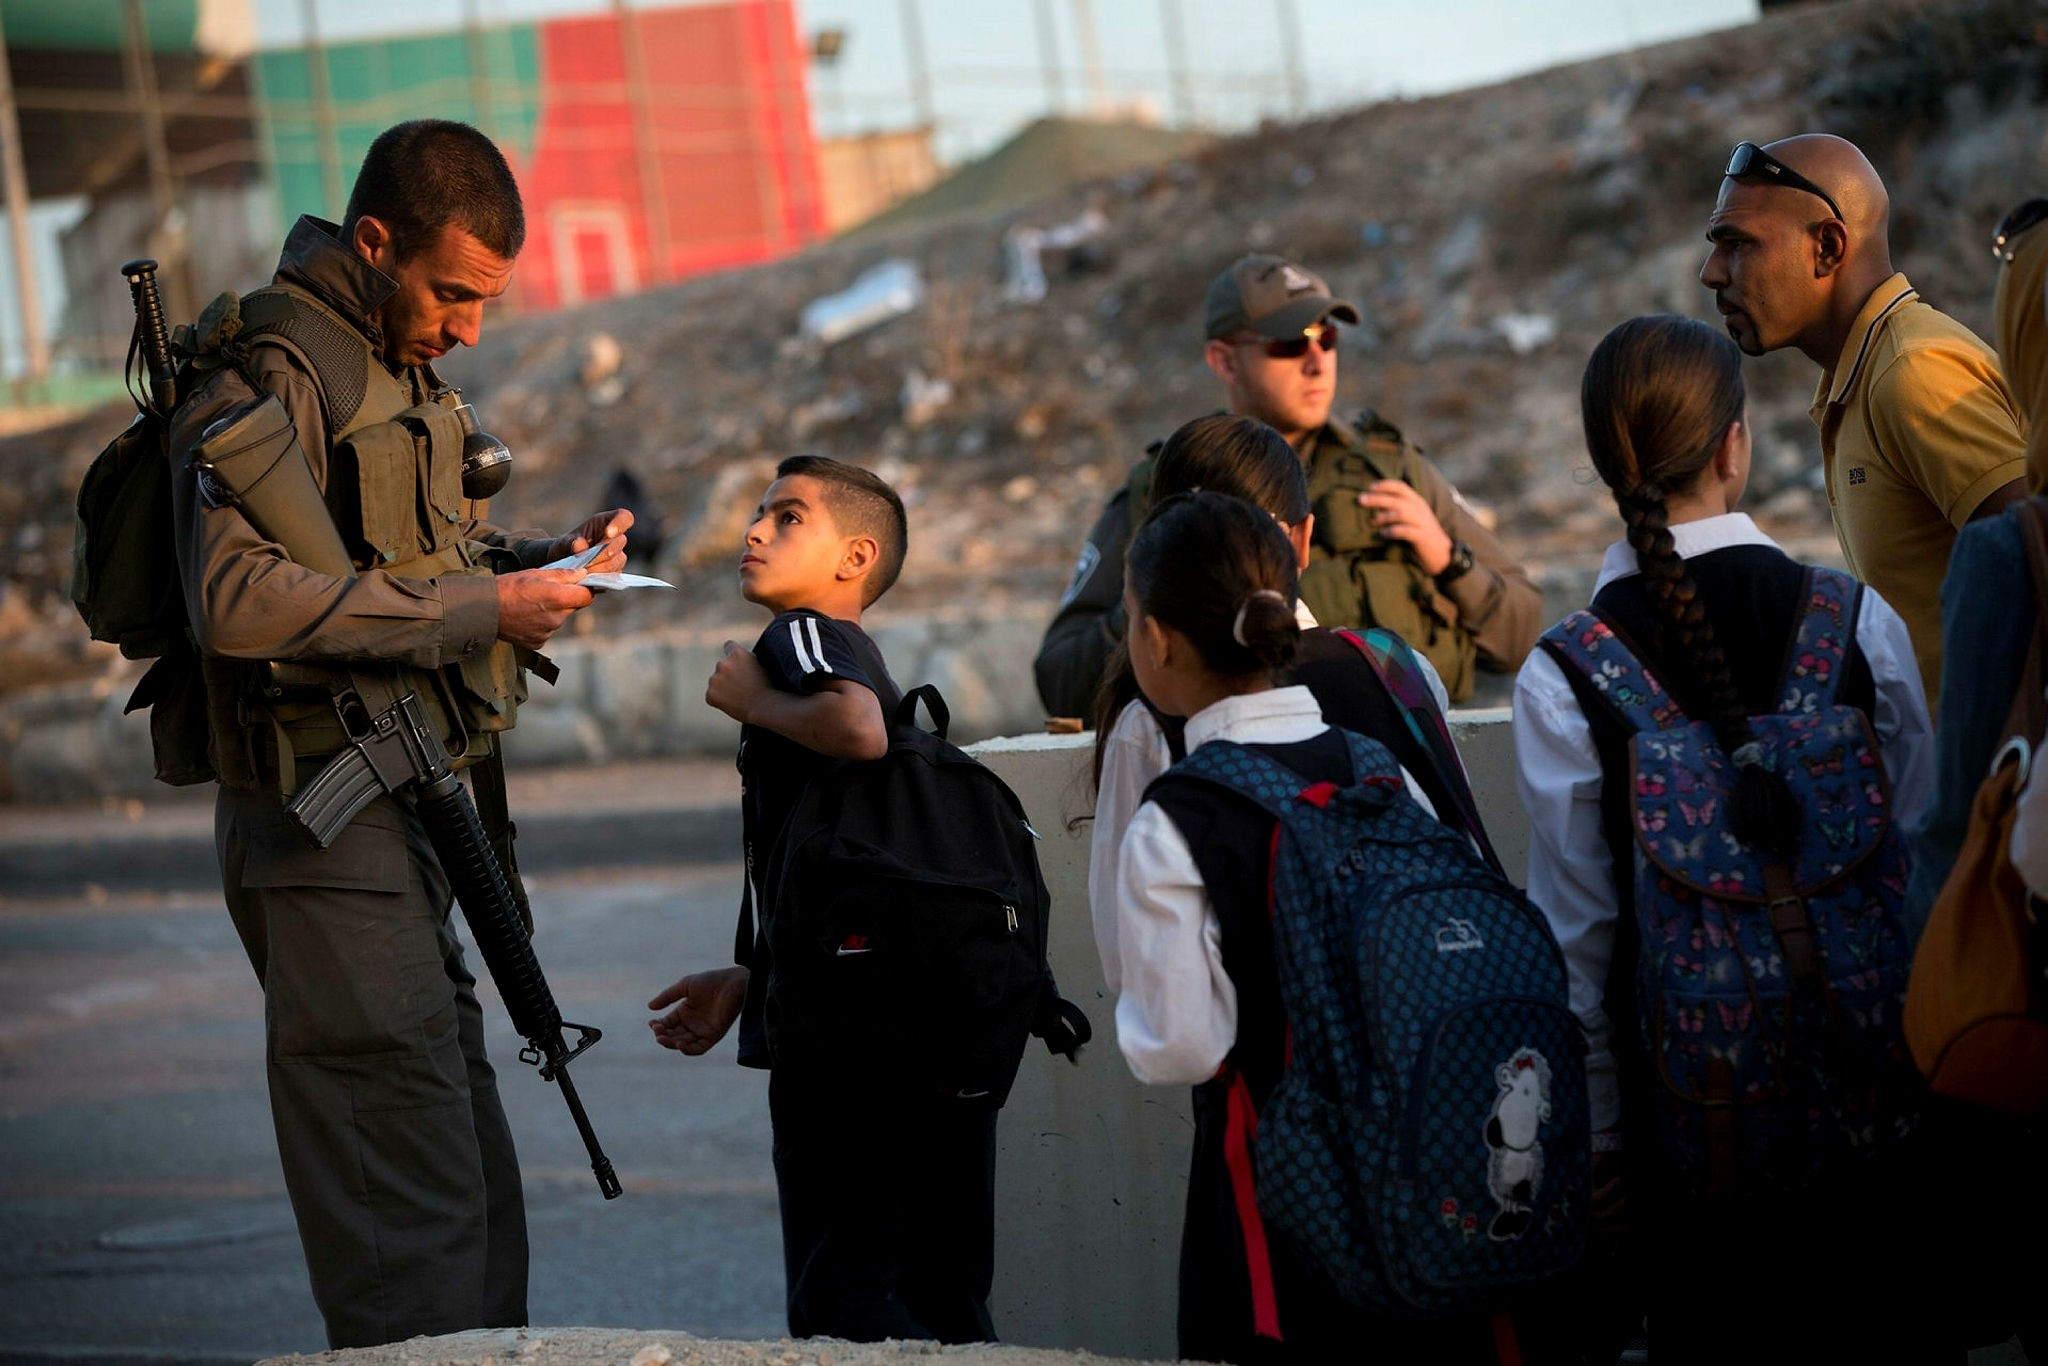 Israeli border police check Palestinian's identification cards at a checkpoint as they exit the Arab neighborhood of Issawiyeh in east Jerusalem.